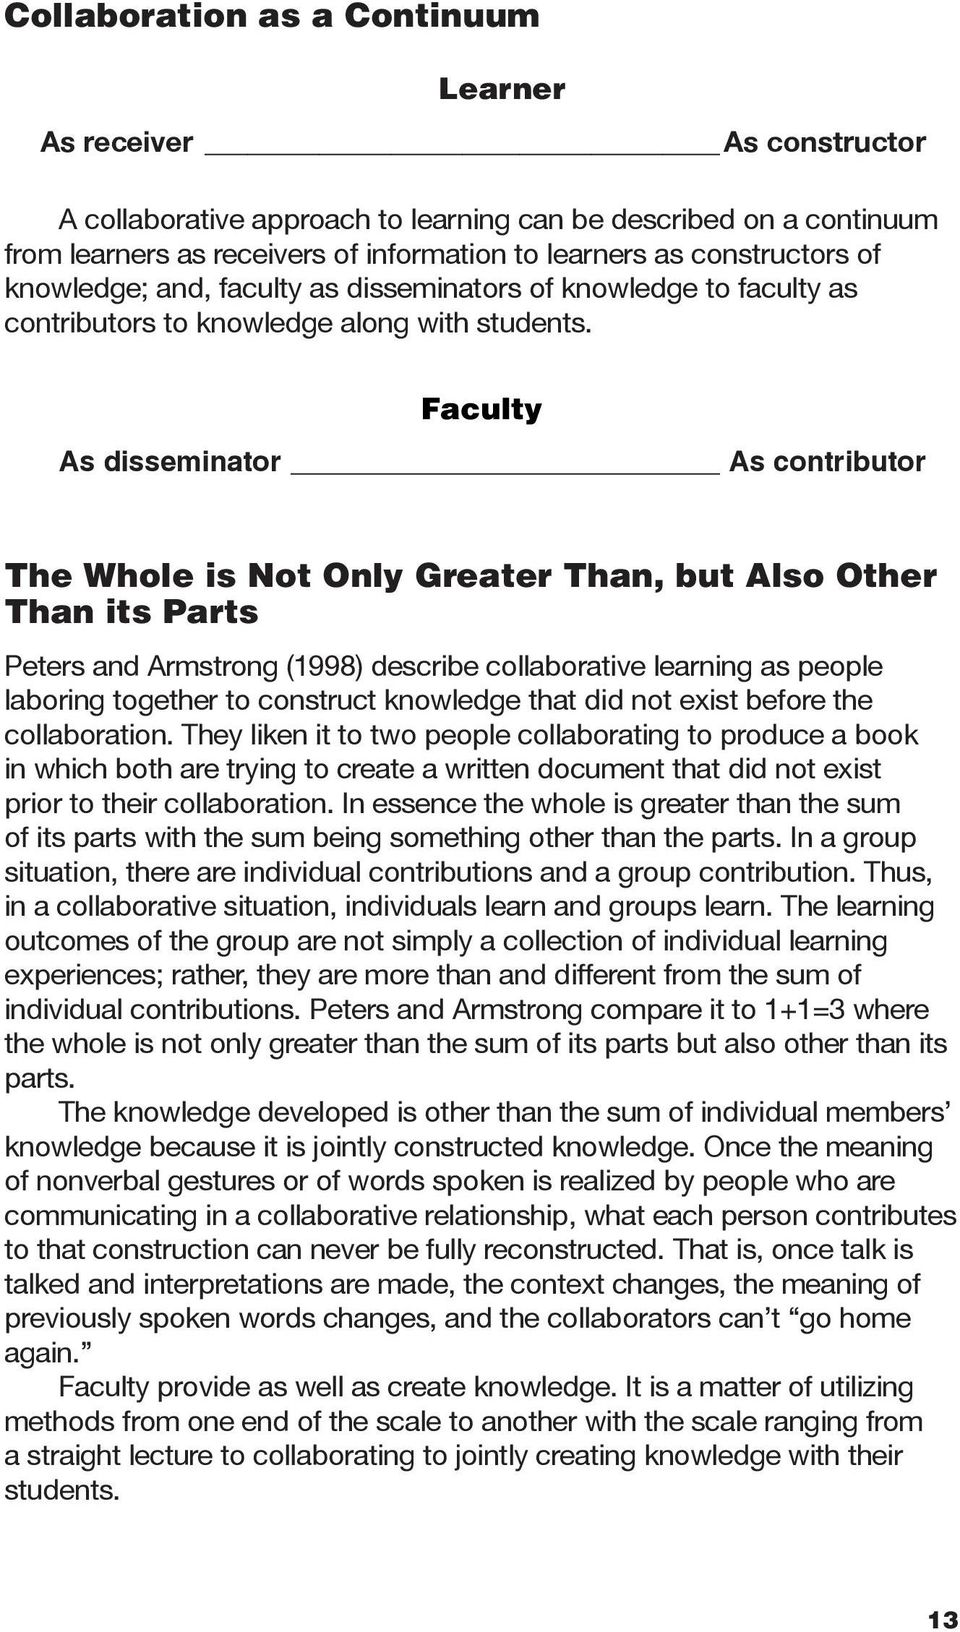 Faculty As disseminator As contributor The Whole is Not Only Greater Than, but Also Other Than its Parts Peters and Armstrong (1998) describe collaborative learning as people laboring together to